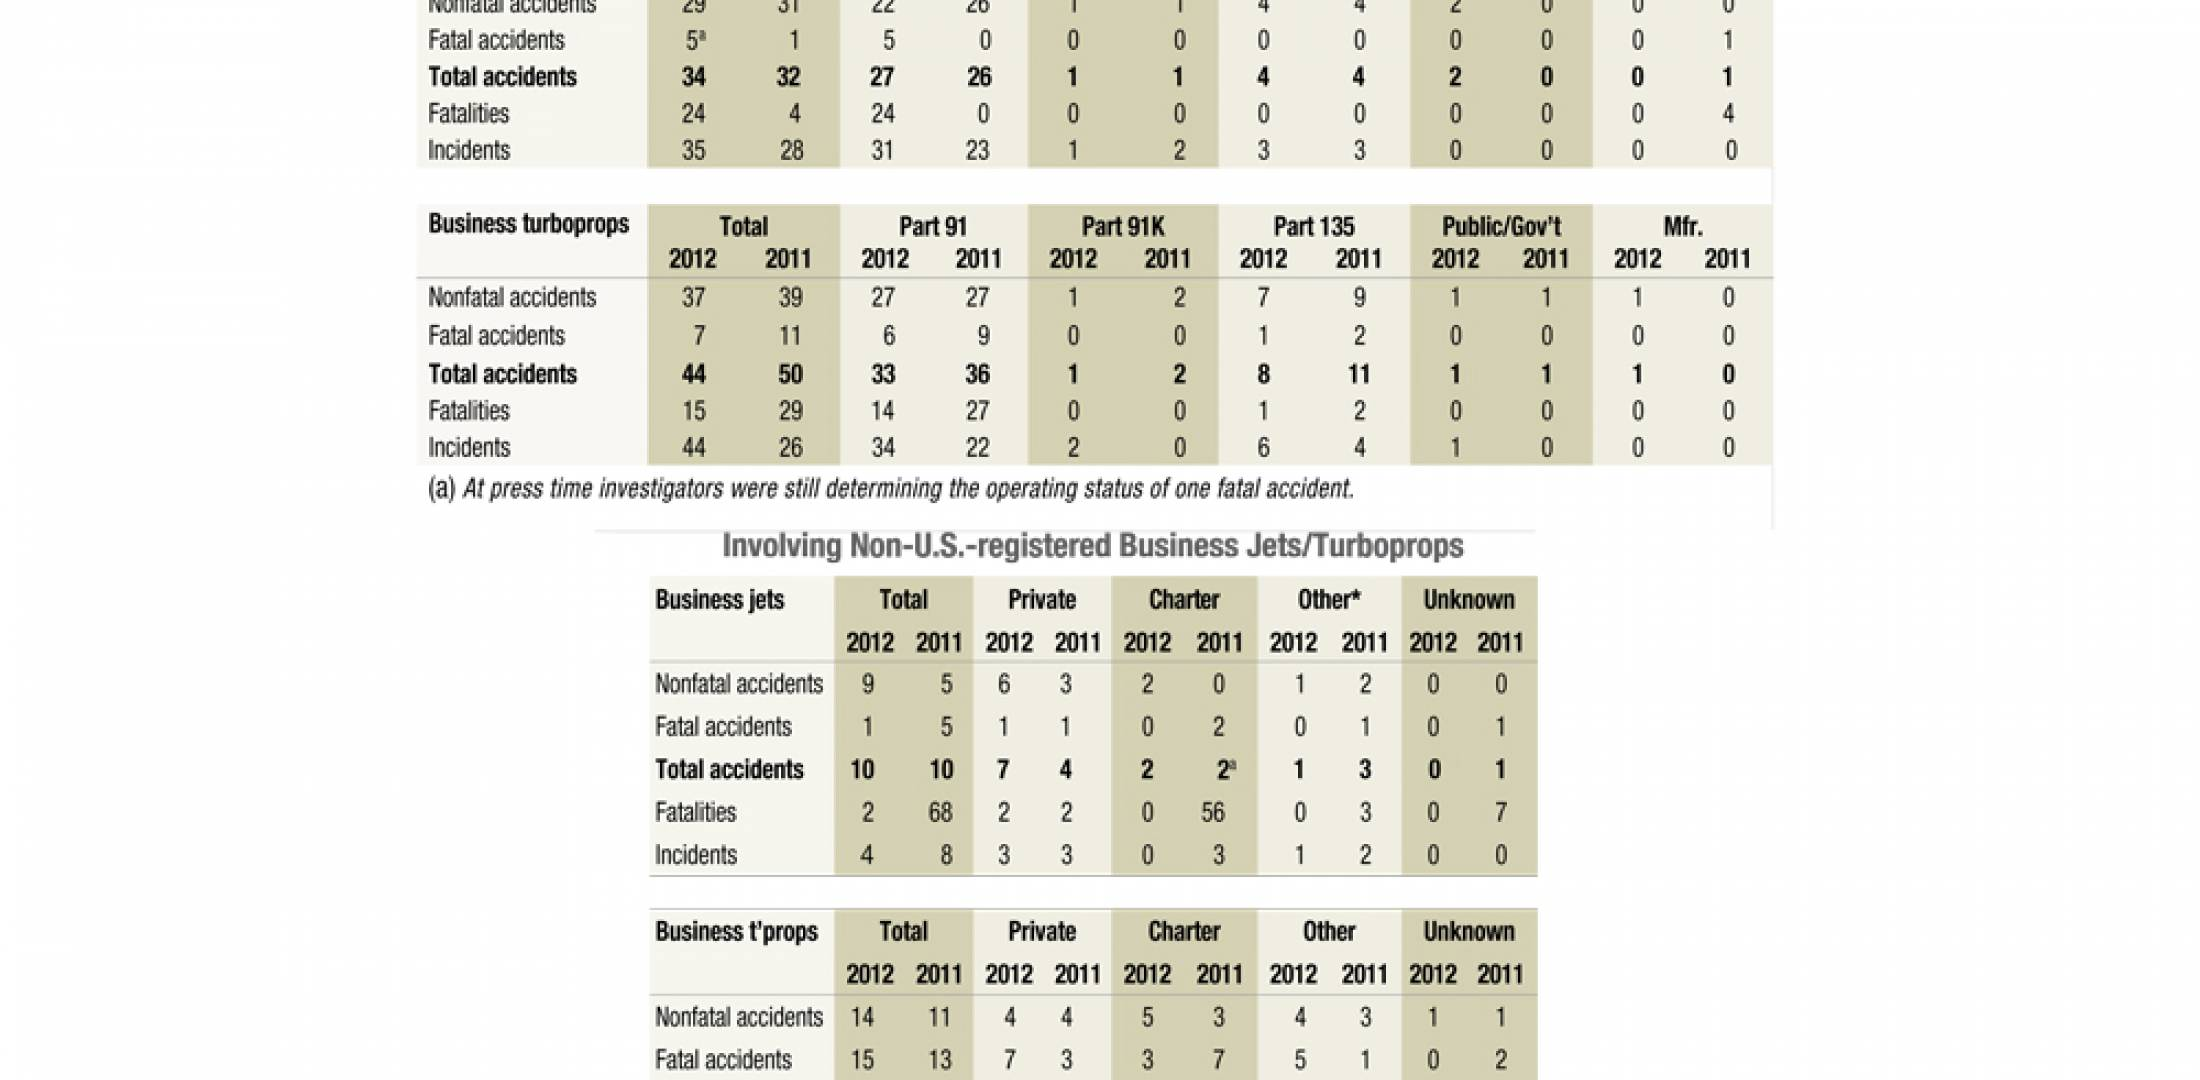 Accidents/Incidents Worldwide 2012 vs. 2011